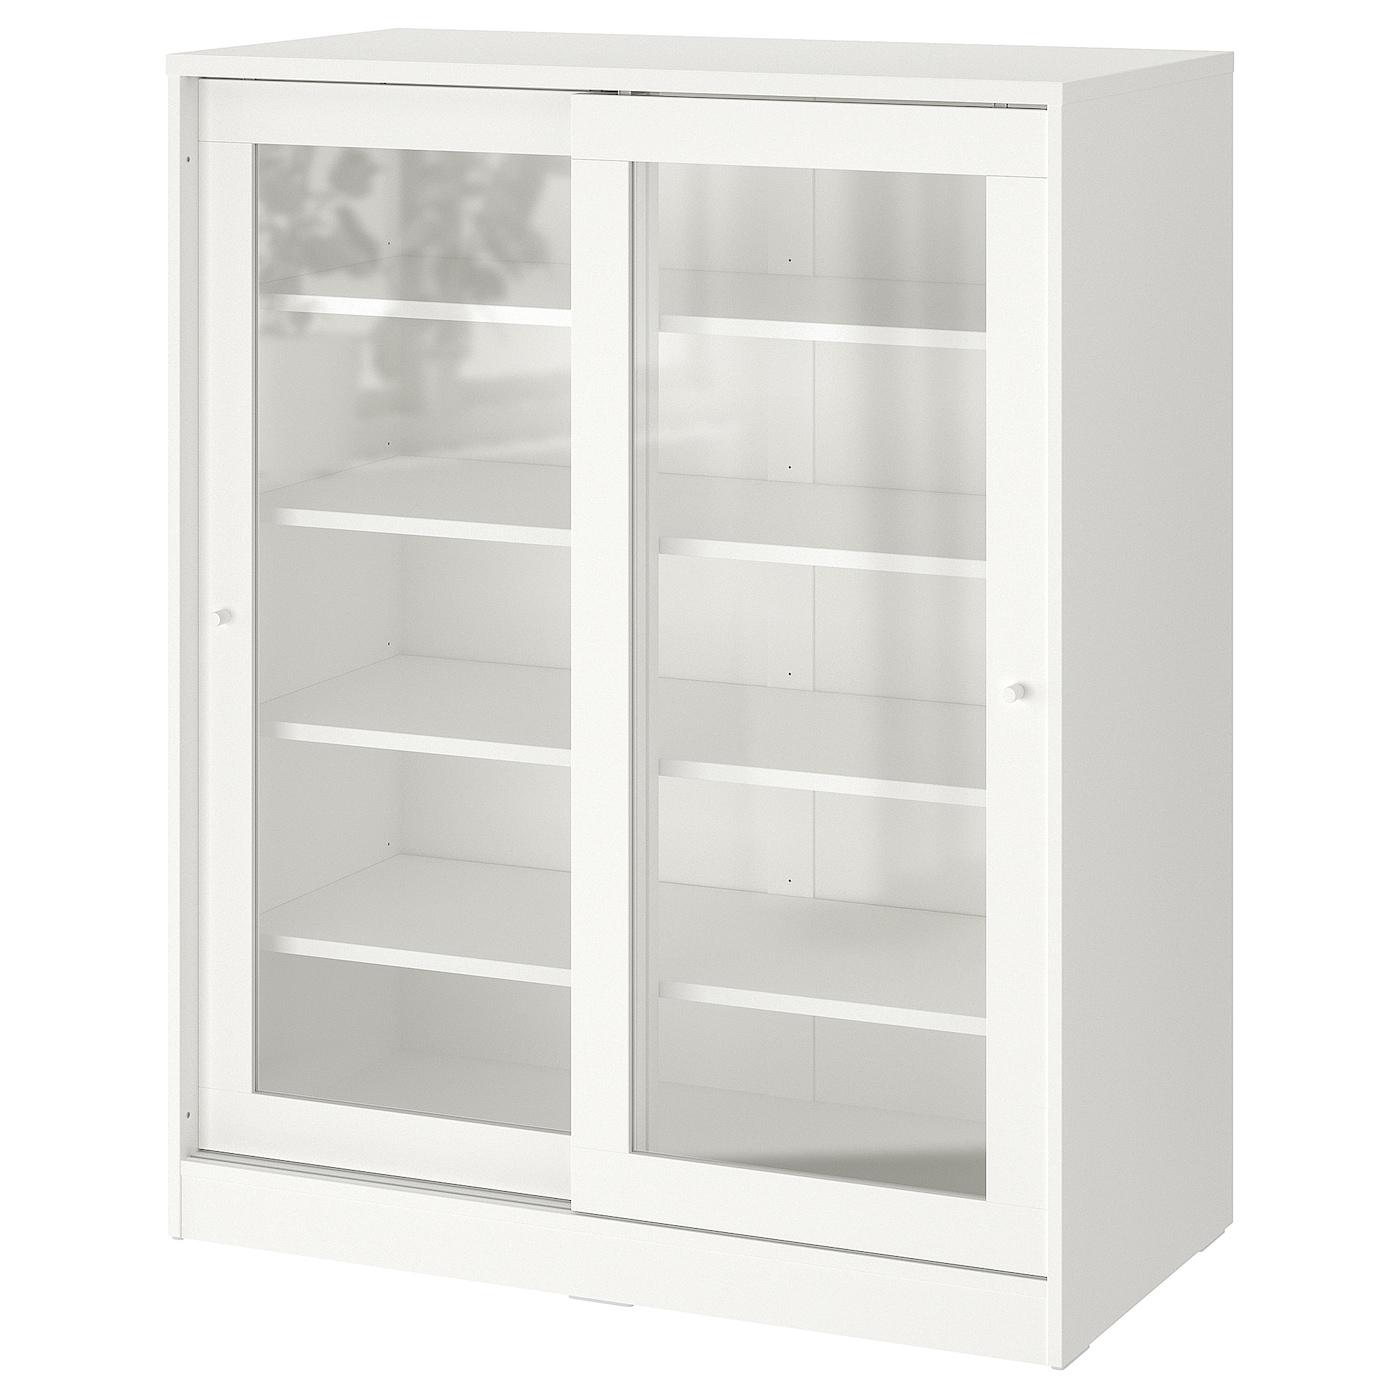 SYVDE Cabinet with glass doors - white - IKEA